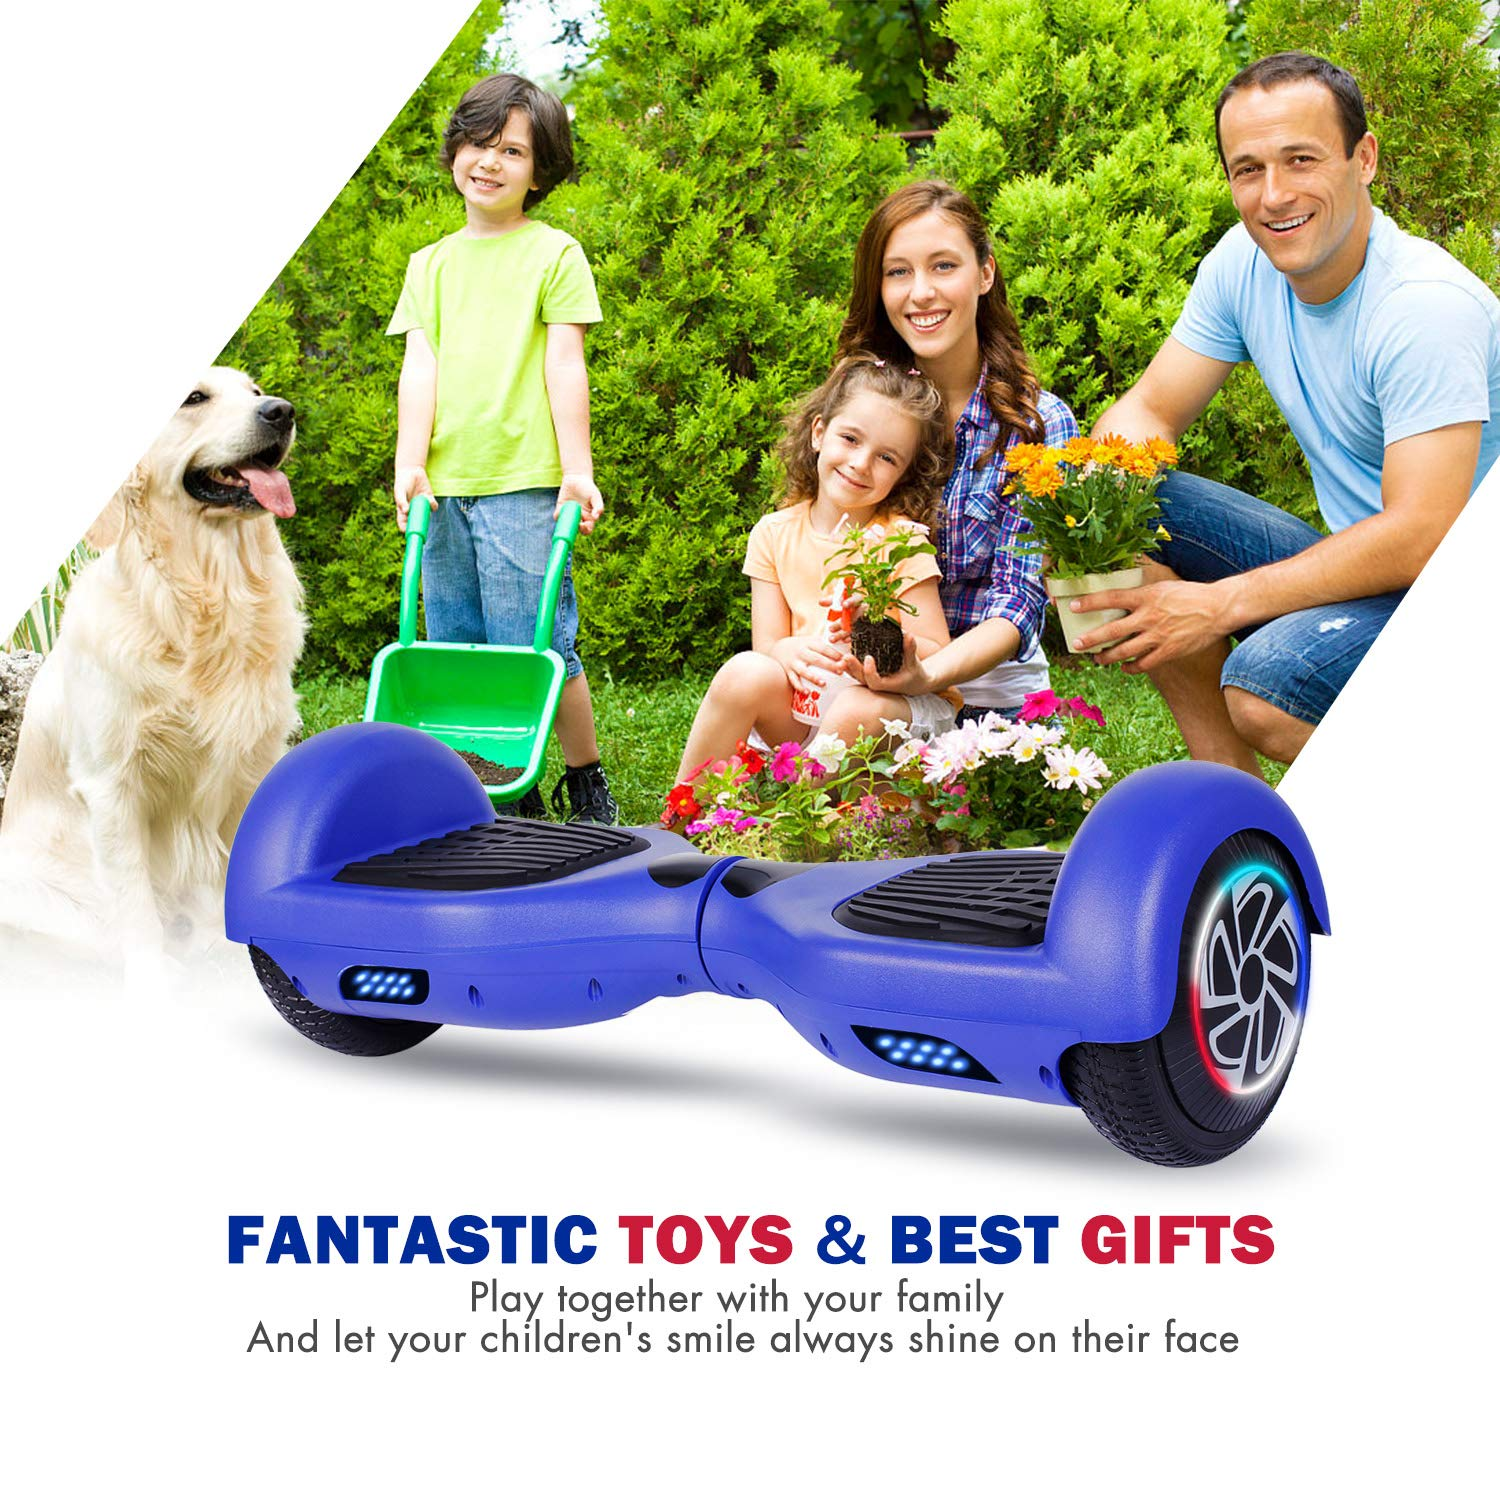 SISIGAD Hoverboard, Self Balancing Hoverboard, 6.5'' Two-Wheel Self Balancing Scooter, Smart Hover Board for Kids Gift, Adult Electric Scooter, with LED Lights and Free Carrying Bag UL2272 Certified by SISIGAD (Image #6)